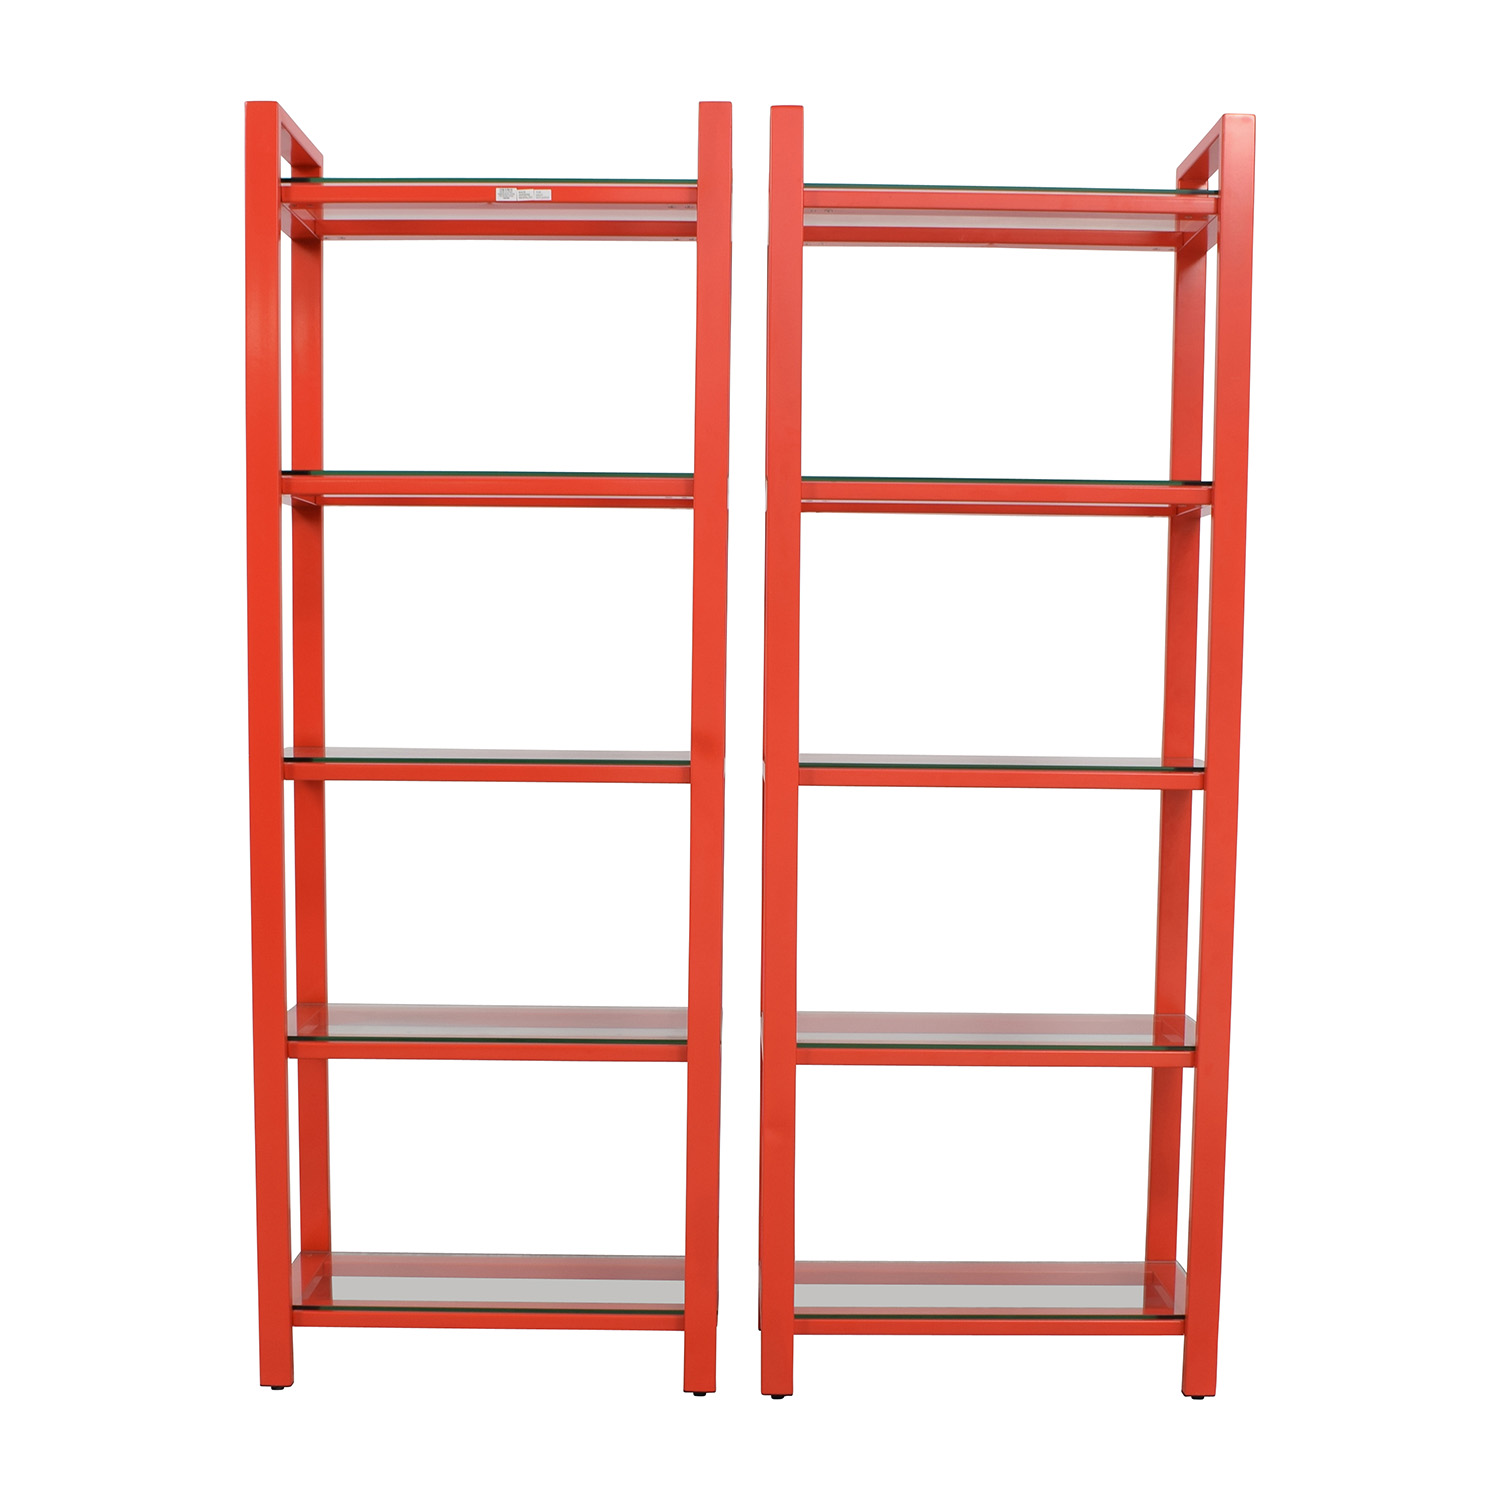 Crate and Barrel Crate & Barrel Pilsen Red Bookshelves used